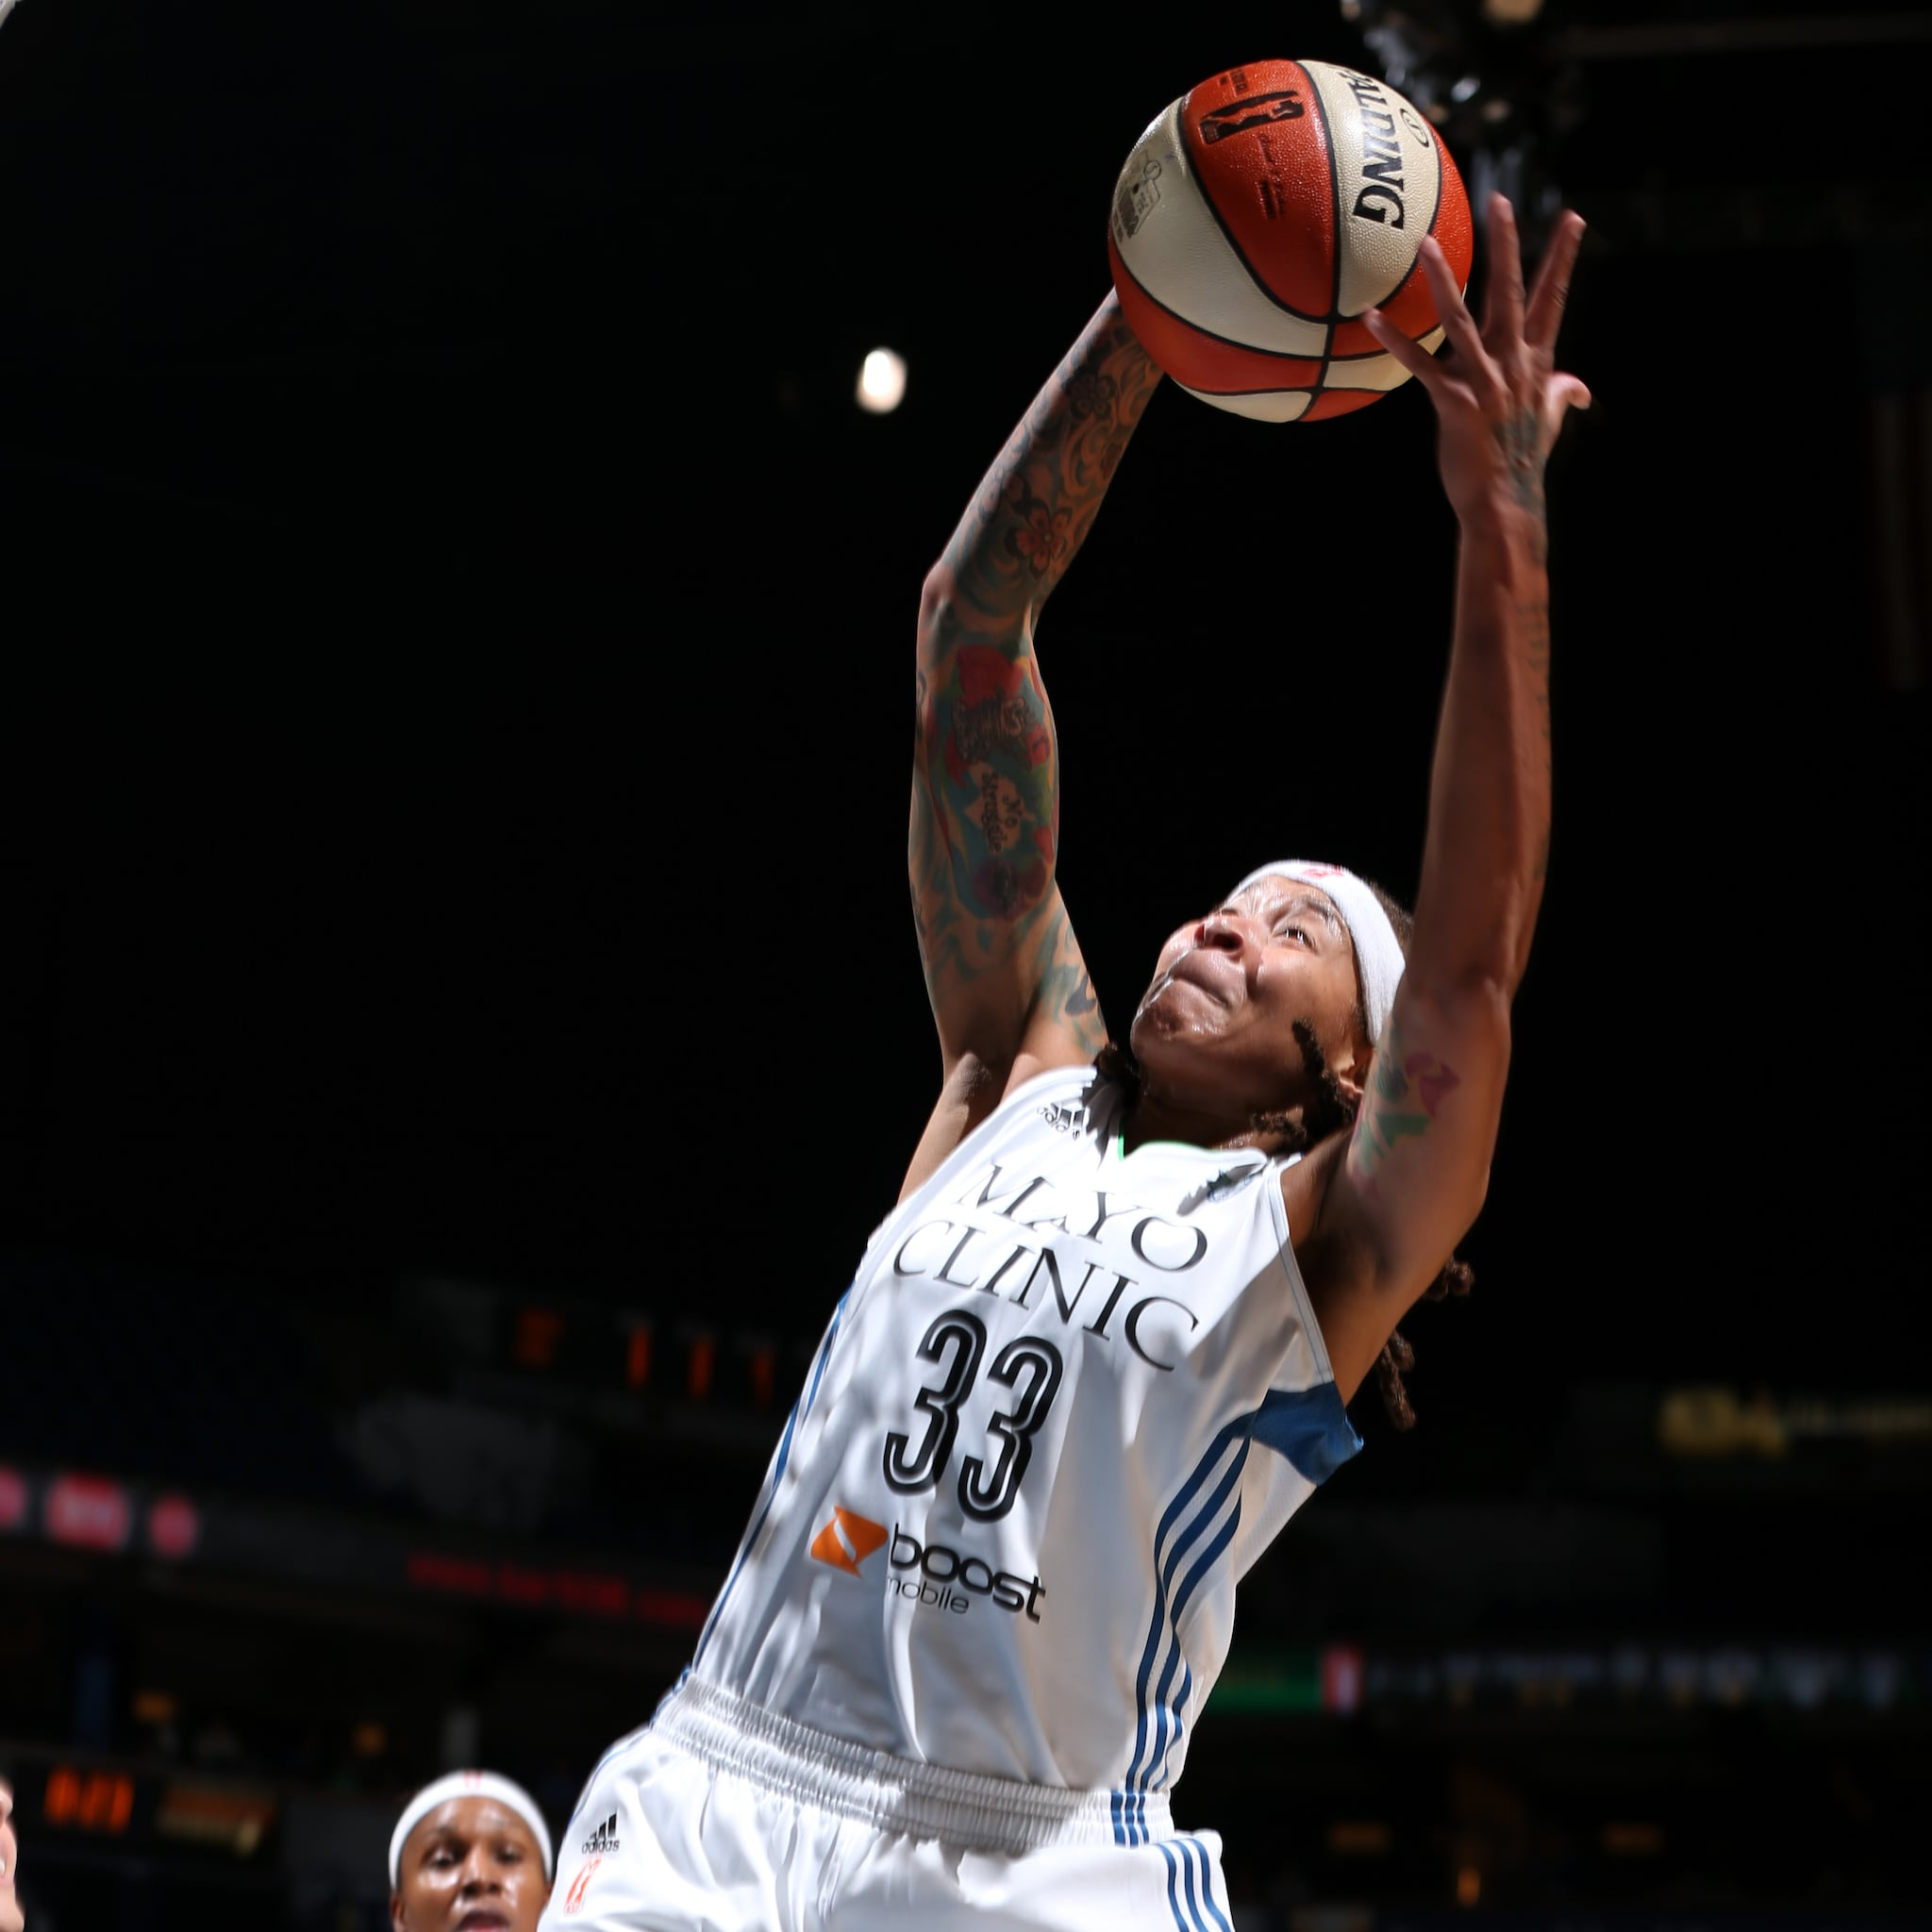 MINNEAPOLIS, MN - SEPTEMBER 18:  Seimone Augustus #33 of the Minnesota Lynx grabs the rebound against the Los Angeles Sparks during Game 1 of the 2015 WNBA Western Conference Semifinal on September 18, 2015 at Target Center in Minneapolis, Minnesota.  NOTE TO USER: User expressly acknowledges and agrees that, by downloading and or using this Photograph, user is consenting to the terms and conditions of the Getty Images License Agreement. Mandatory Copyright Notice: Copyright 2015 NBAE (Photo by David Sherman/NBAE via Getty Images)